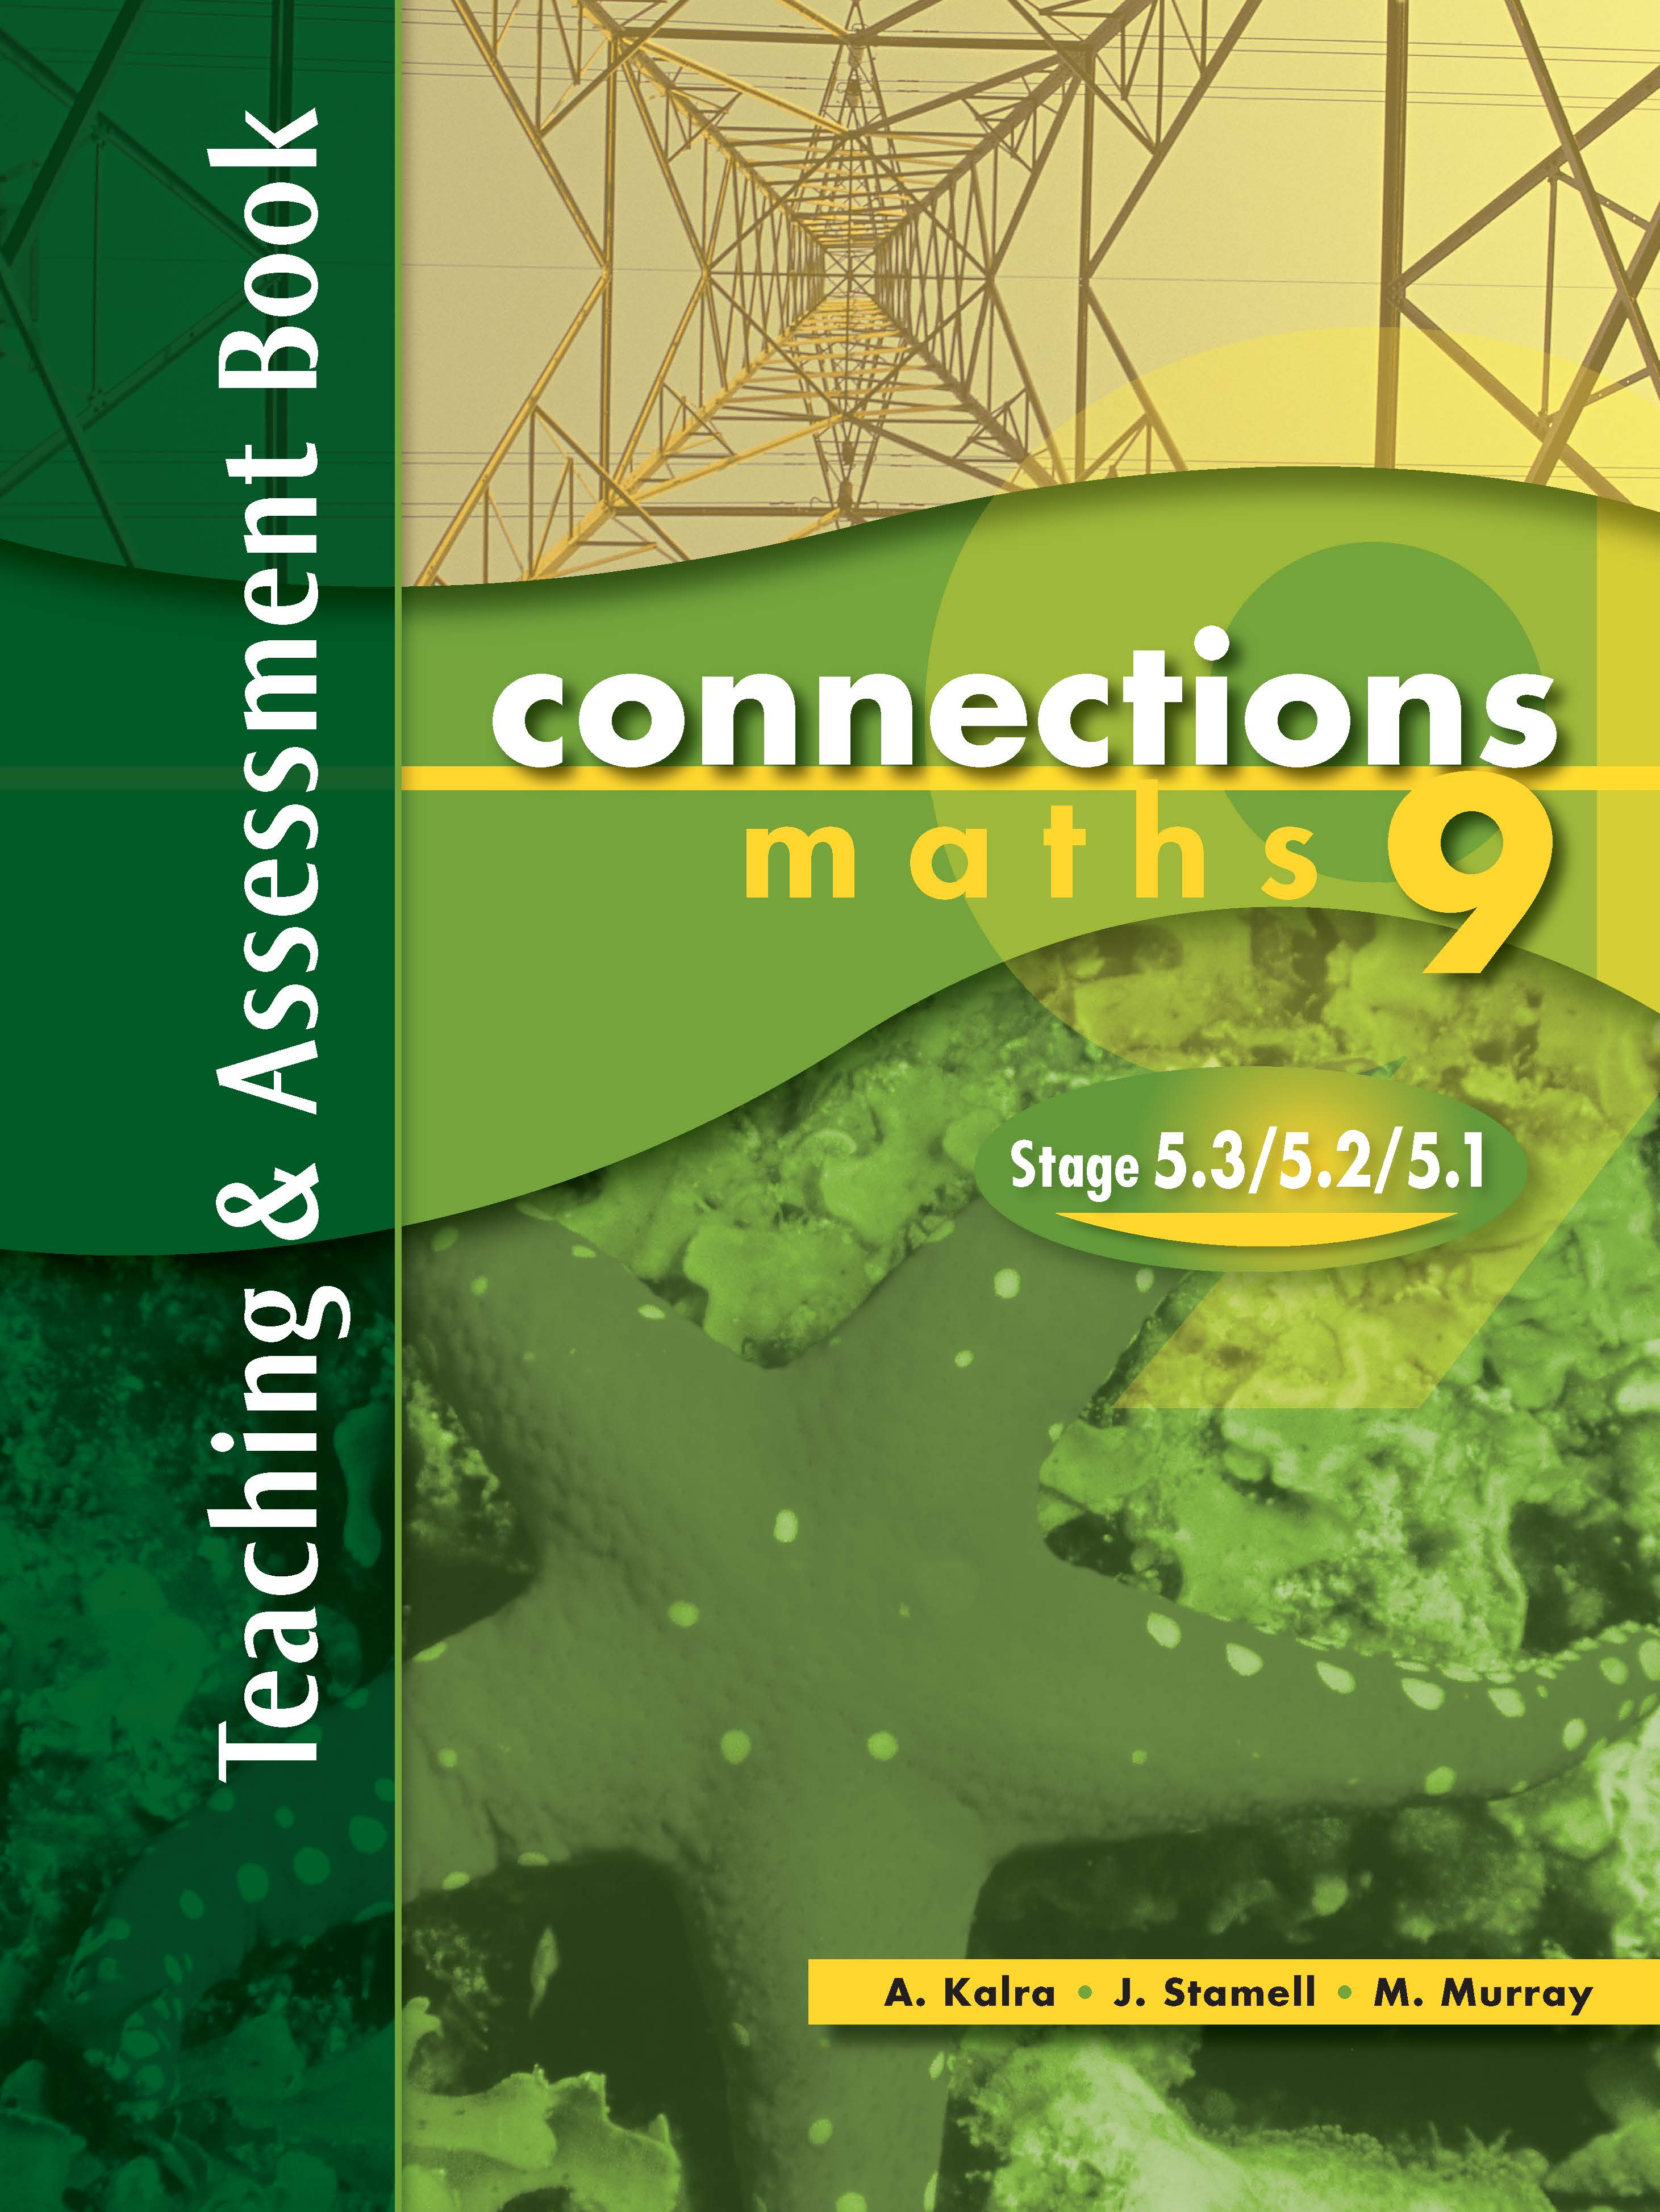 Pascal Press Connections Maths 9 Stage 5.3/5.2/5.1 Teaching & Assessment book Year 9